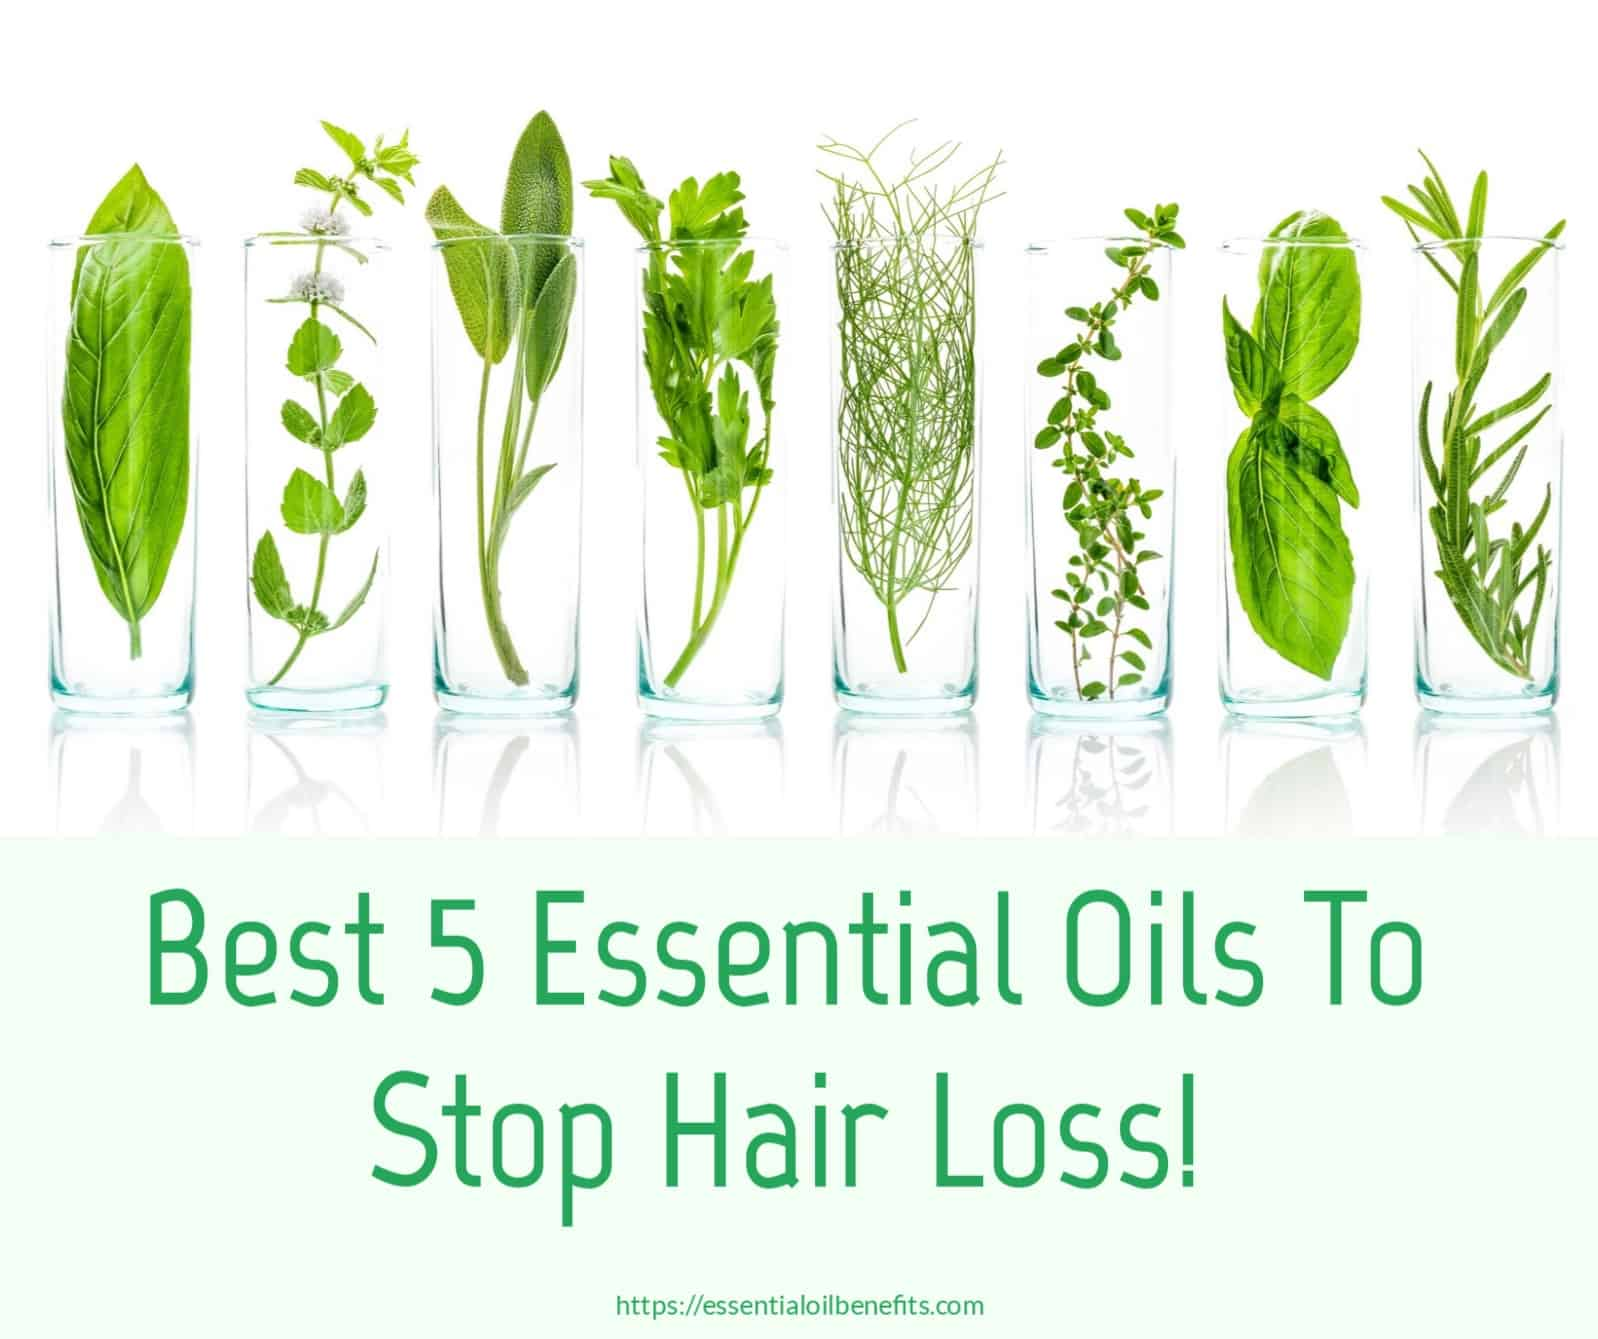 Essential Oils For Hair Loss, Hair Thinning And Alopecia